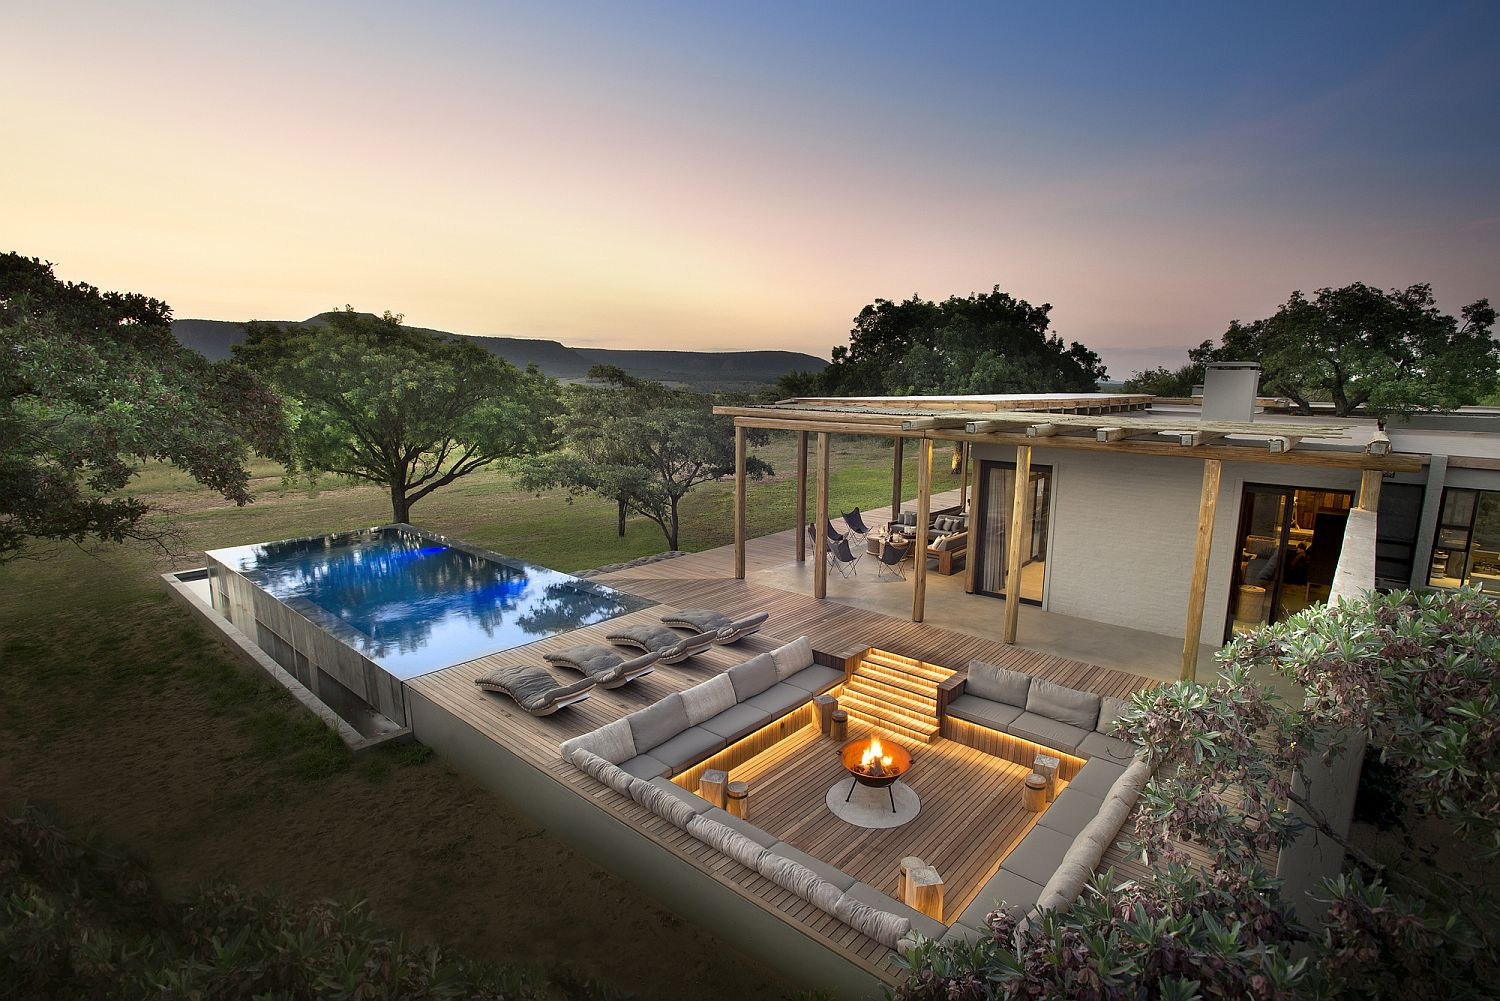 Fabulous contemporary Mabote House in South Africa feels integrated with the landscape